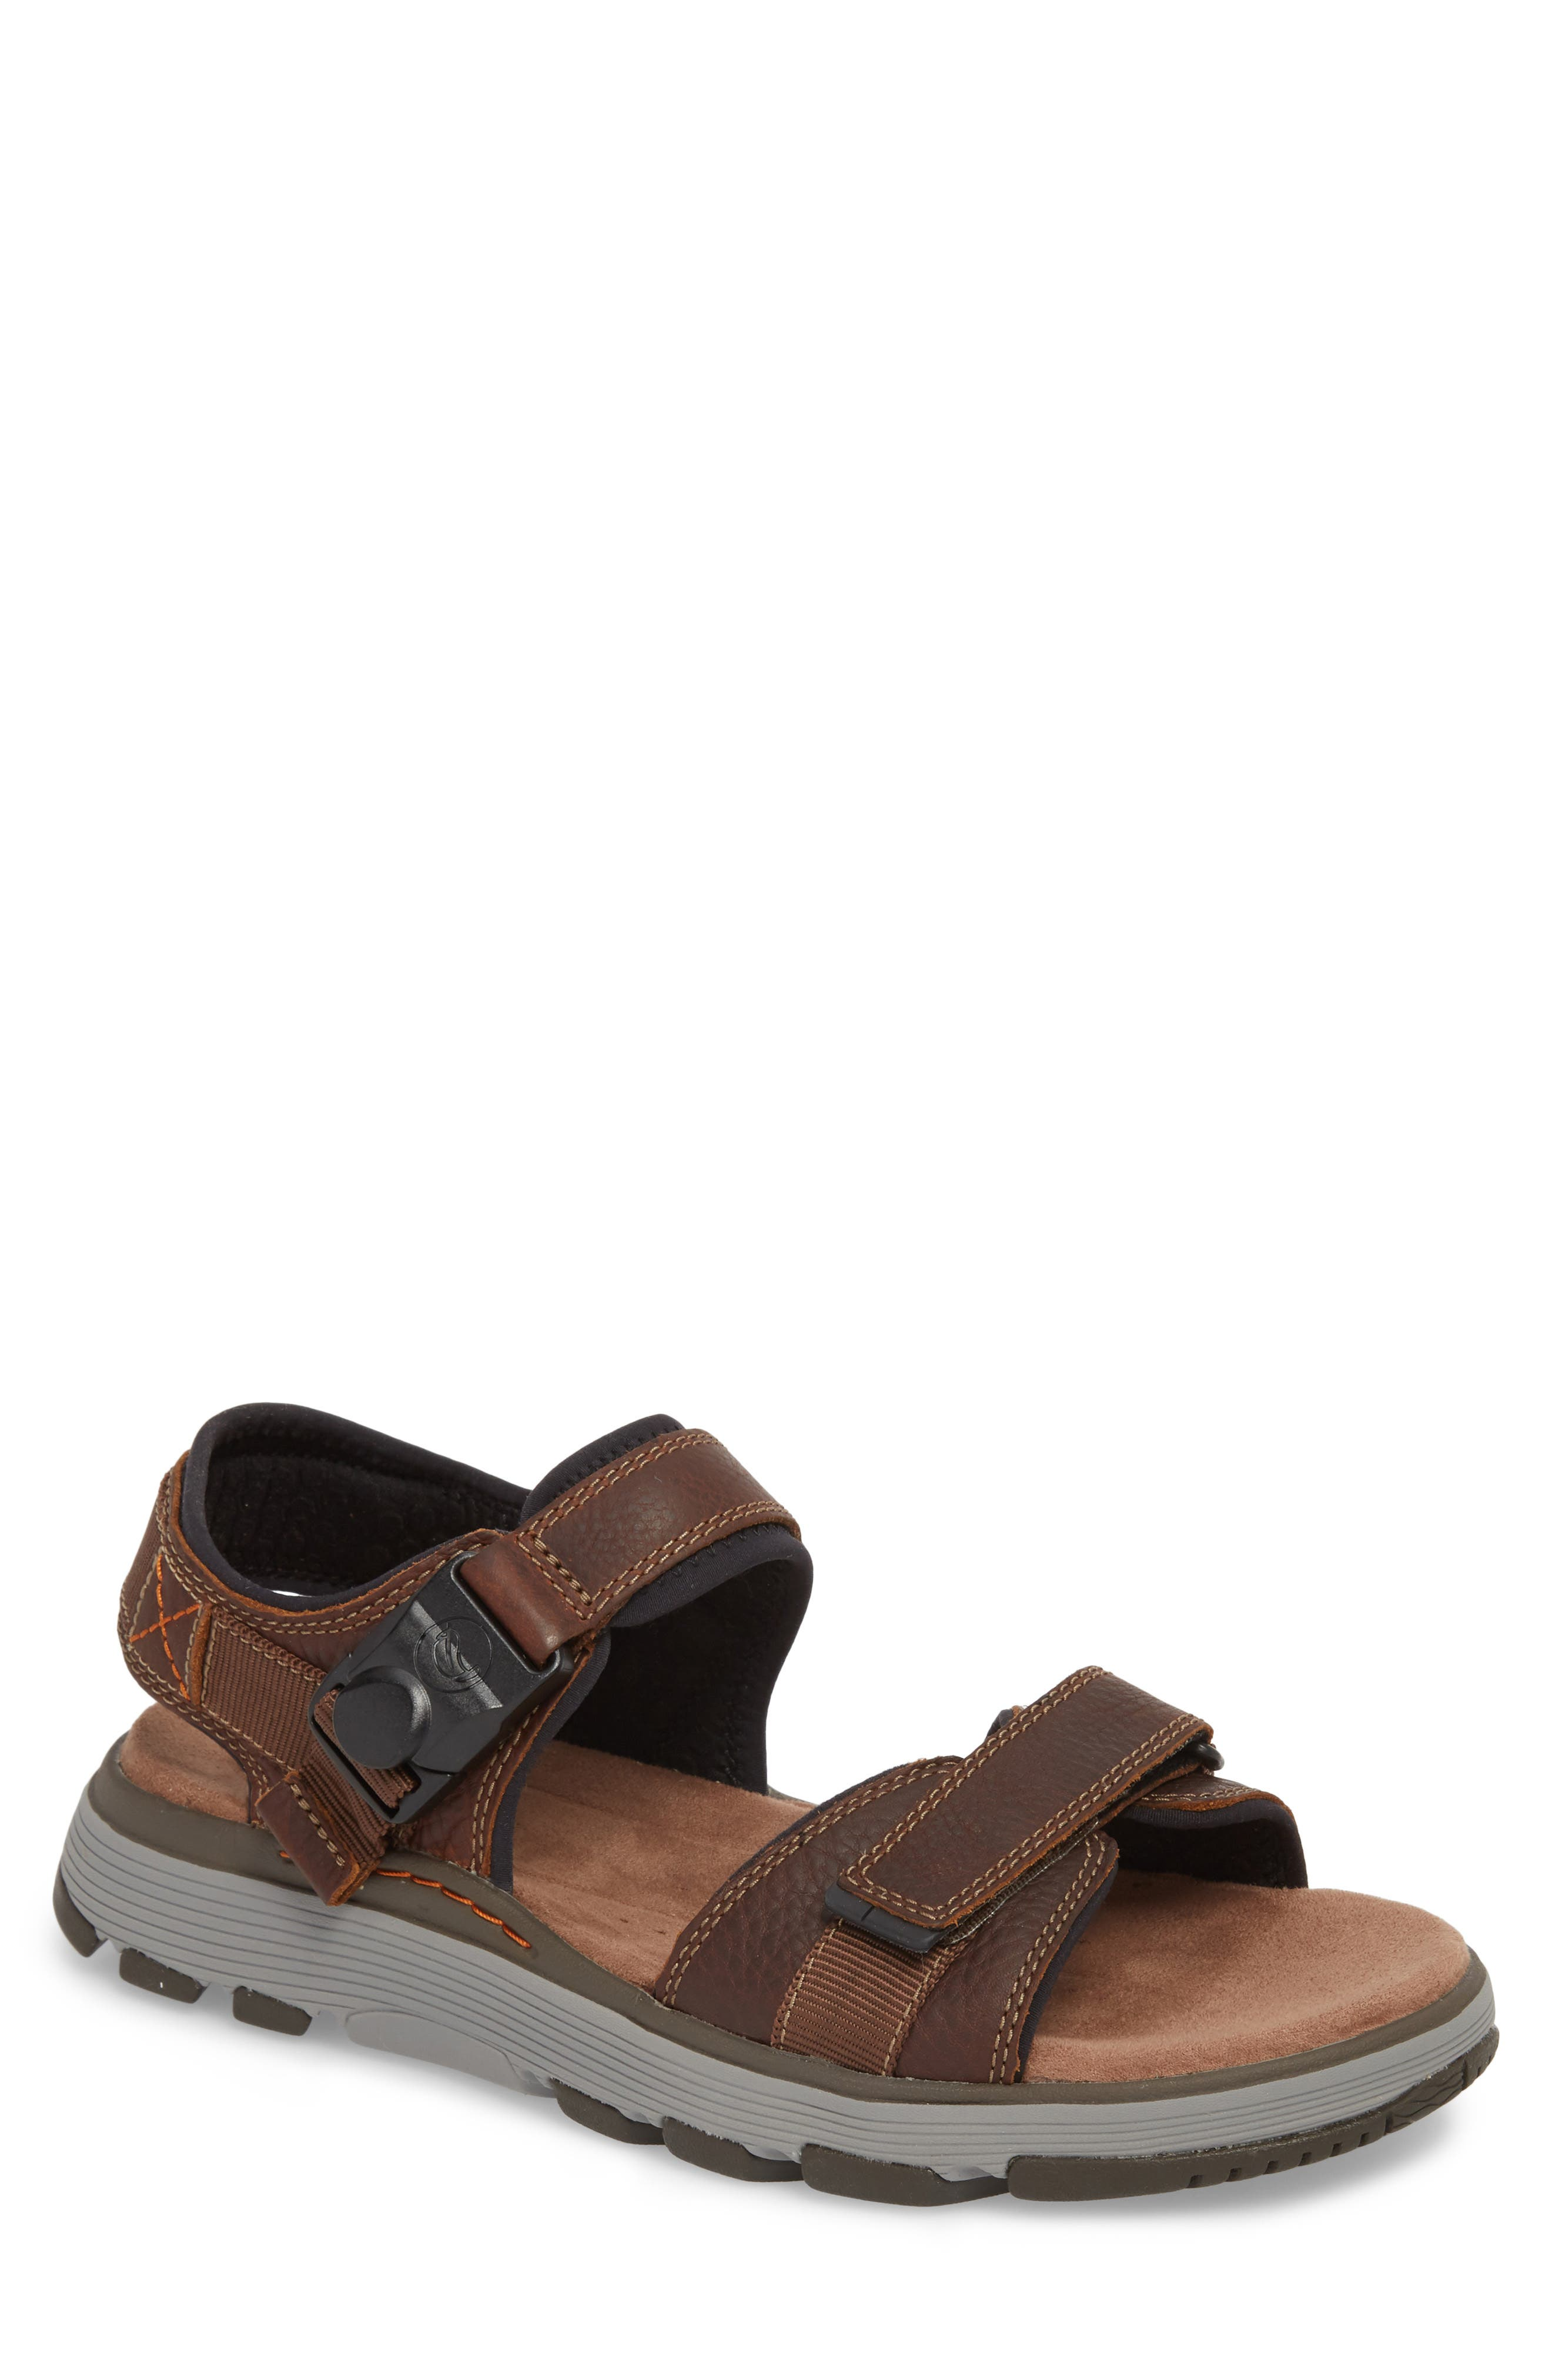 CLARKS<SUP>®</SUP> Originals Un Trek Part Sport Sandal, Main, color, DARK TAN LEATHER